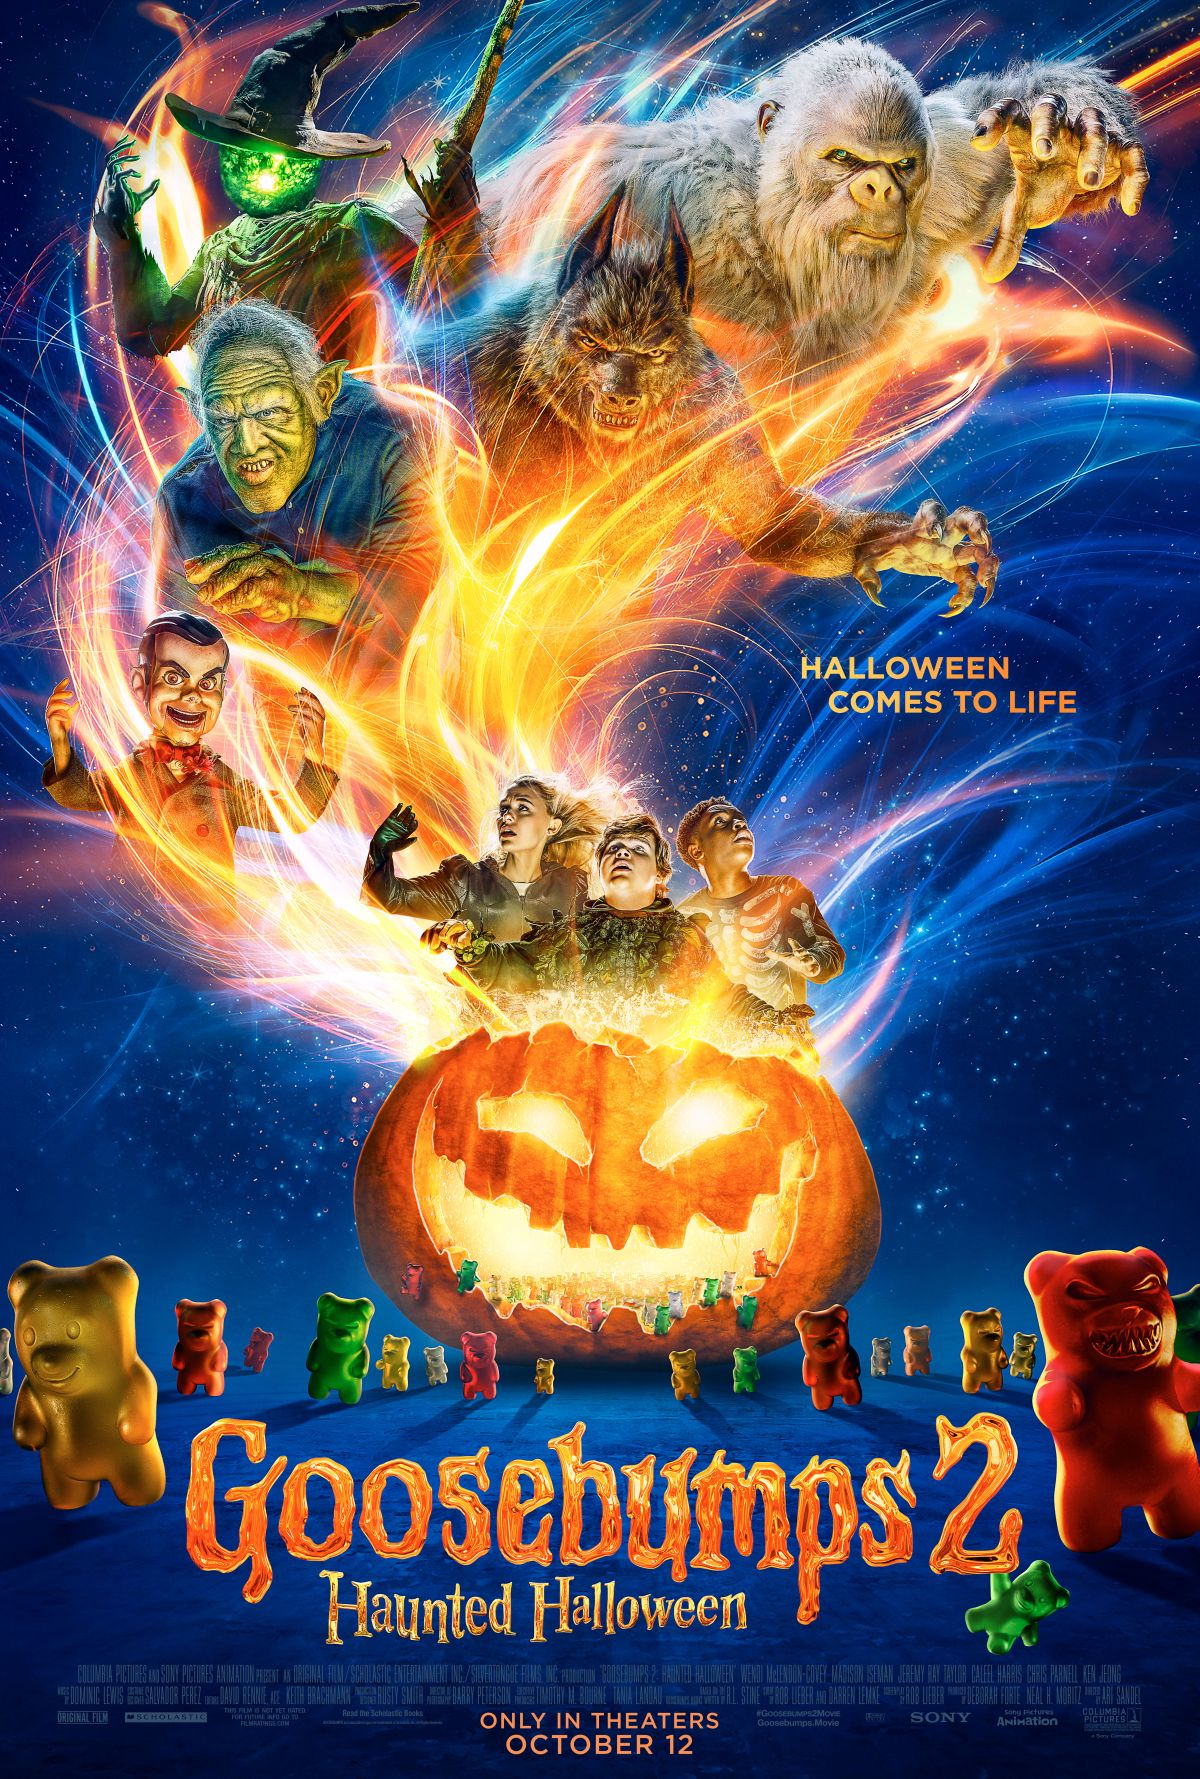 Madisons Headless Snowman As Big As >> Goosebumps 2 Haunted Halloween Goosebumps Wiki Fandom Powered